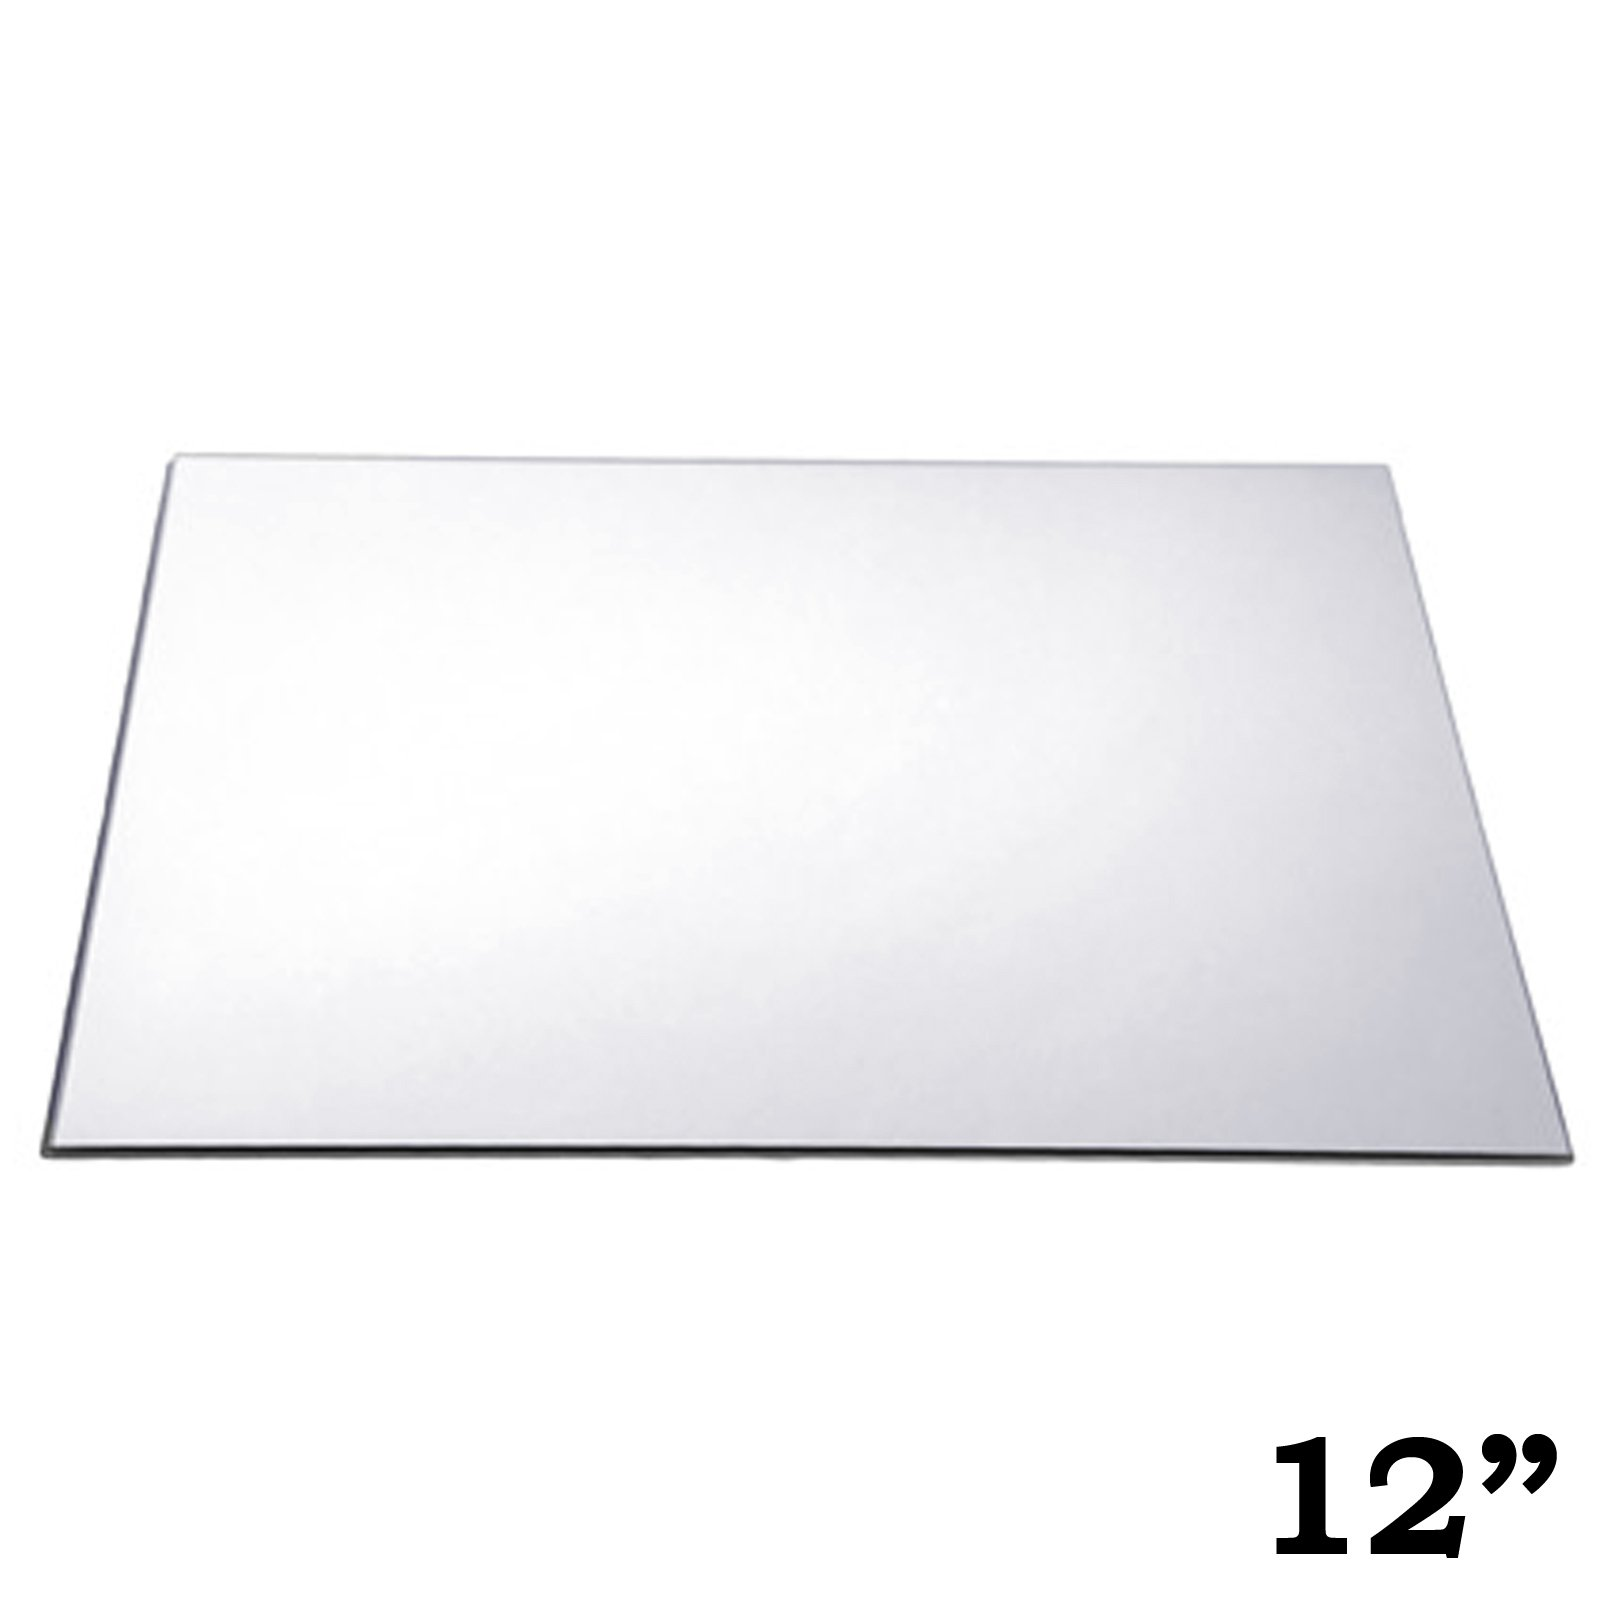 BalsaCircle 8 pcs 12-Inch Square Glass Mirrors for Wedding Party Favors Centerpieces Table Decorations Wholesale Supplies by BalsaCircle